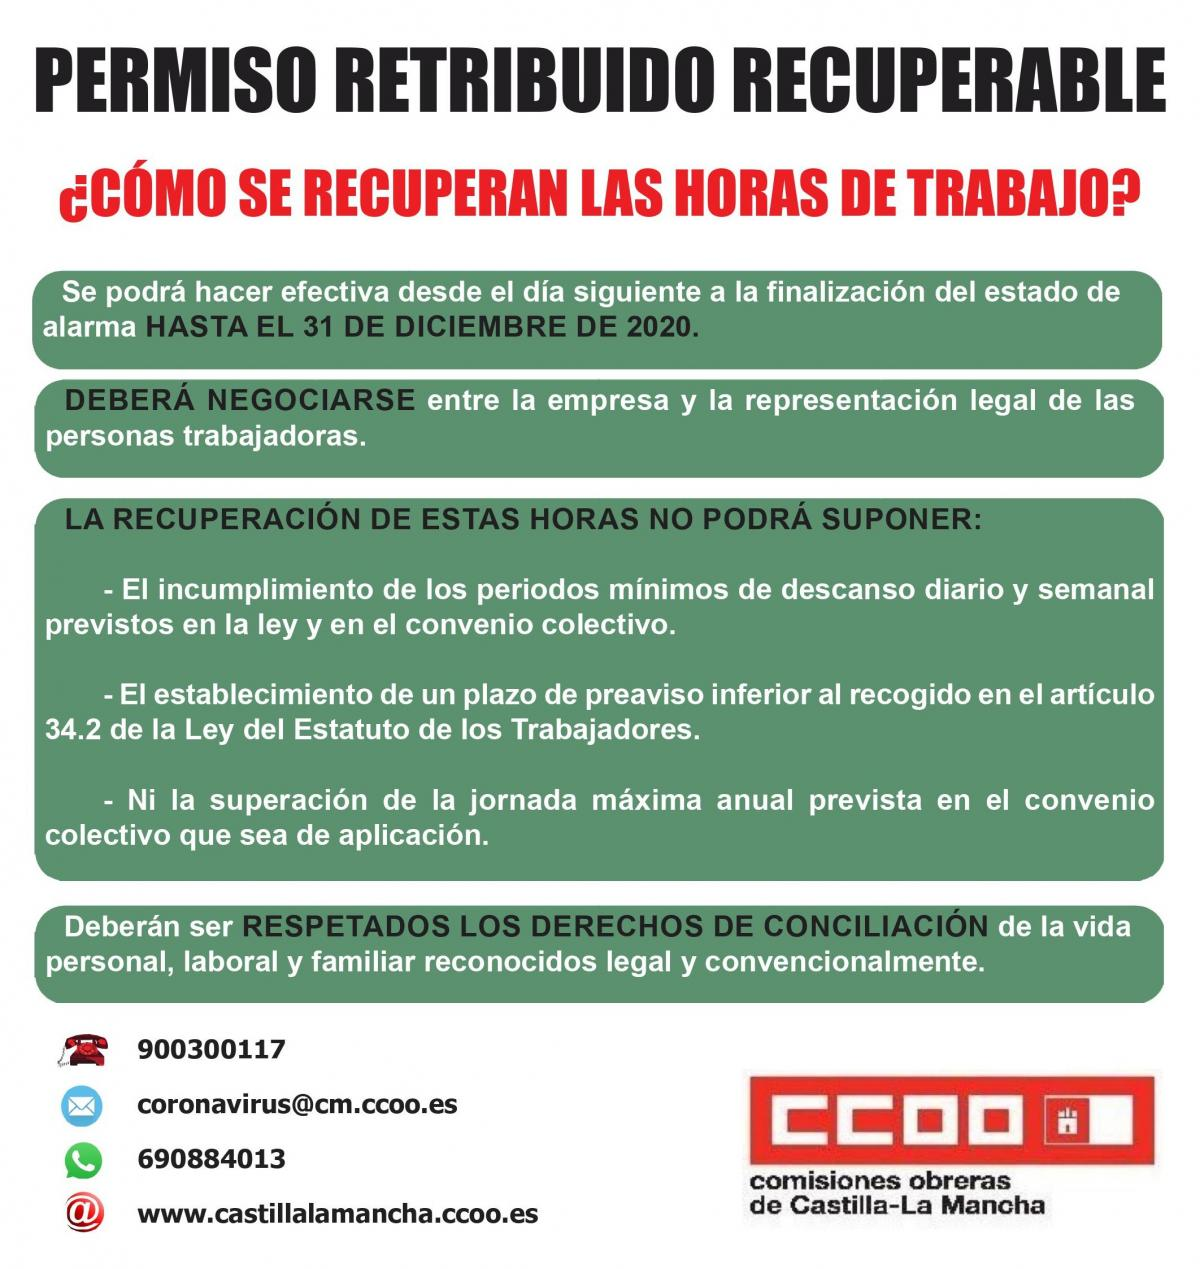 Permiso retribuido recuperable